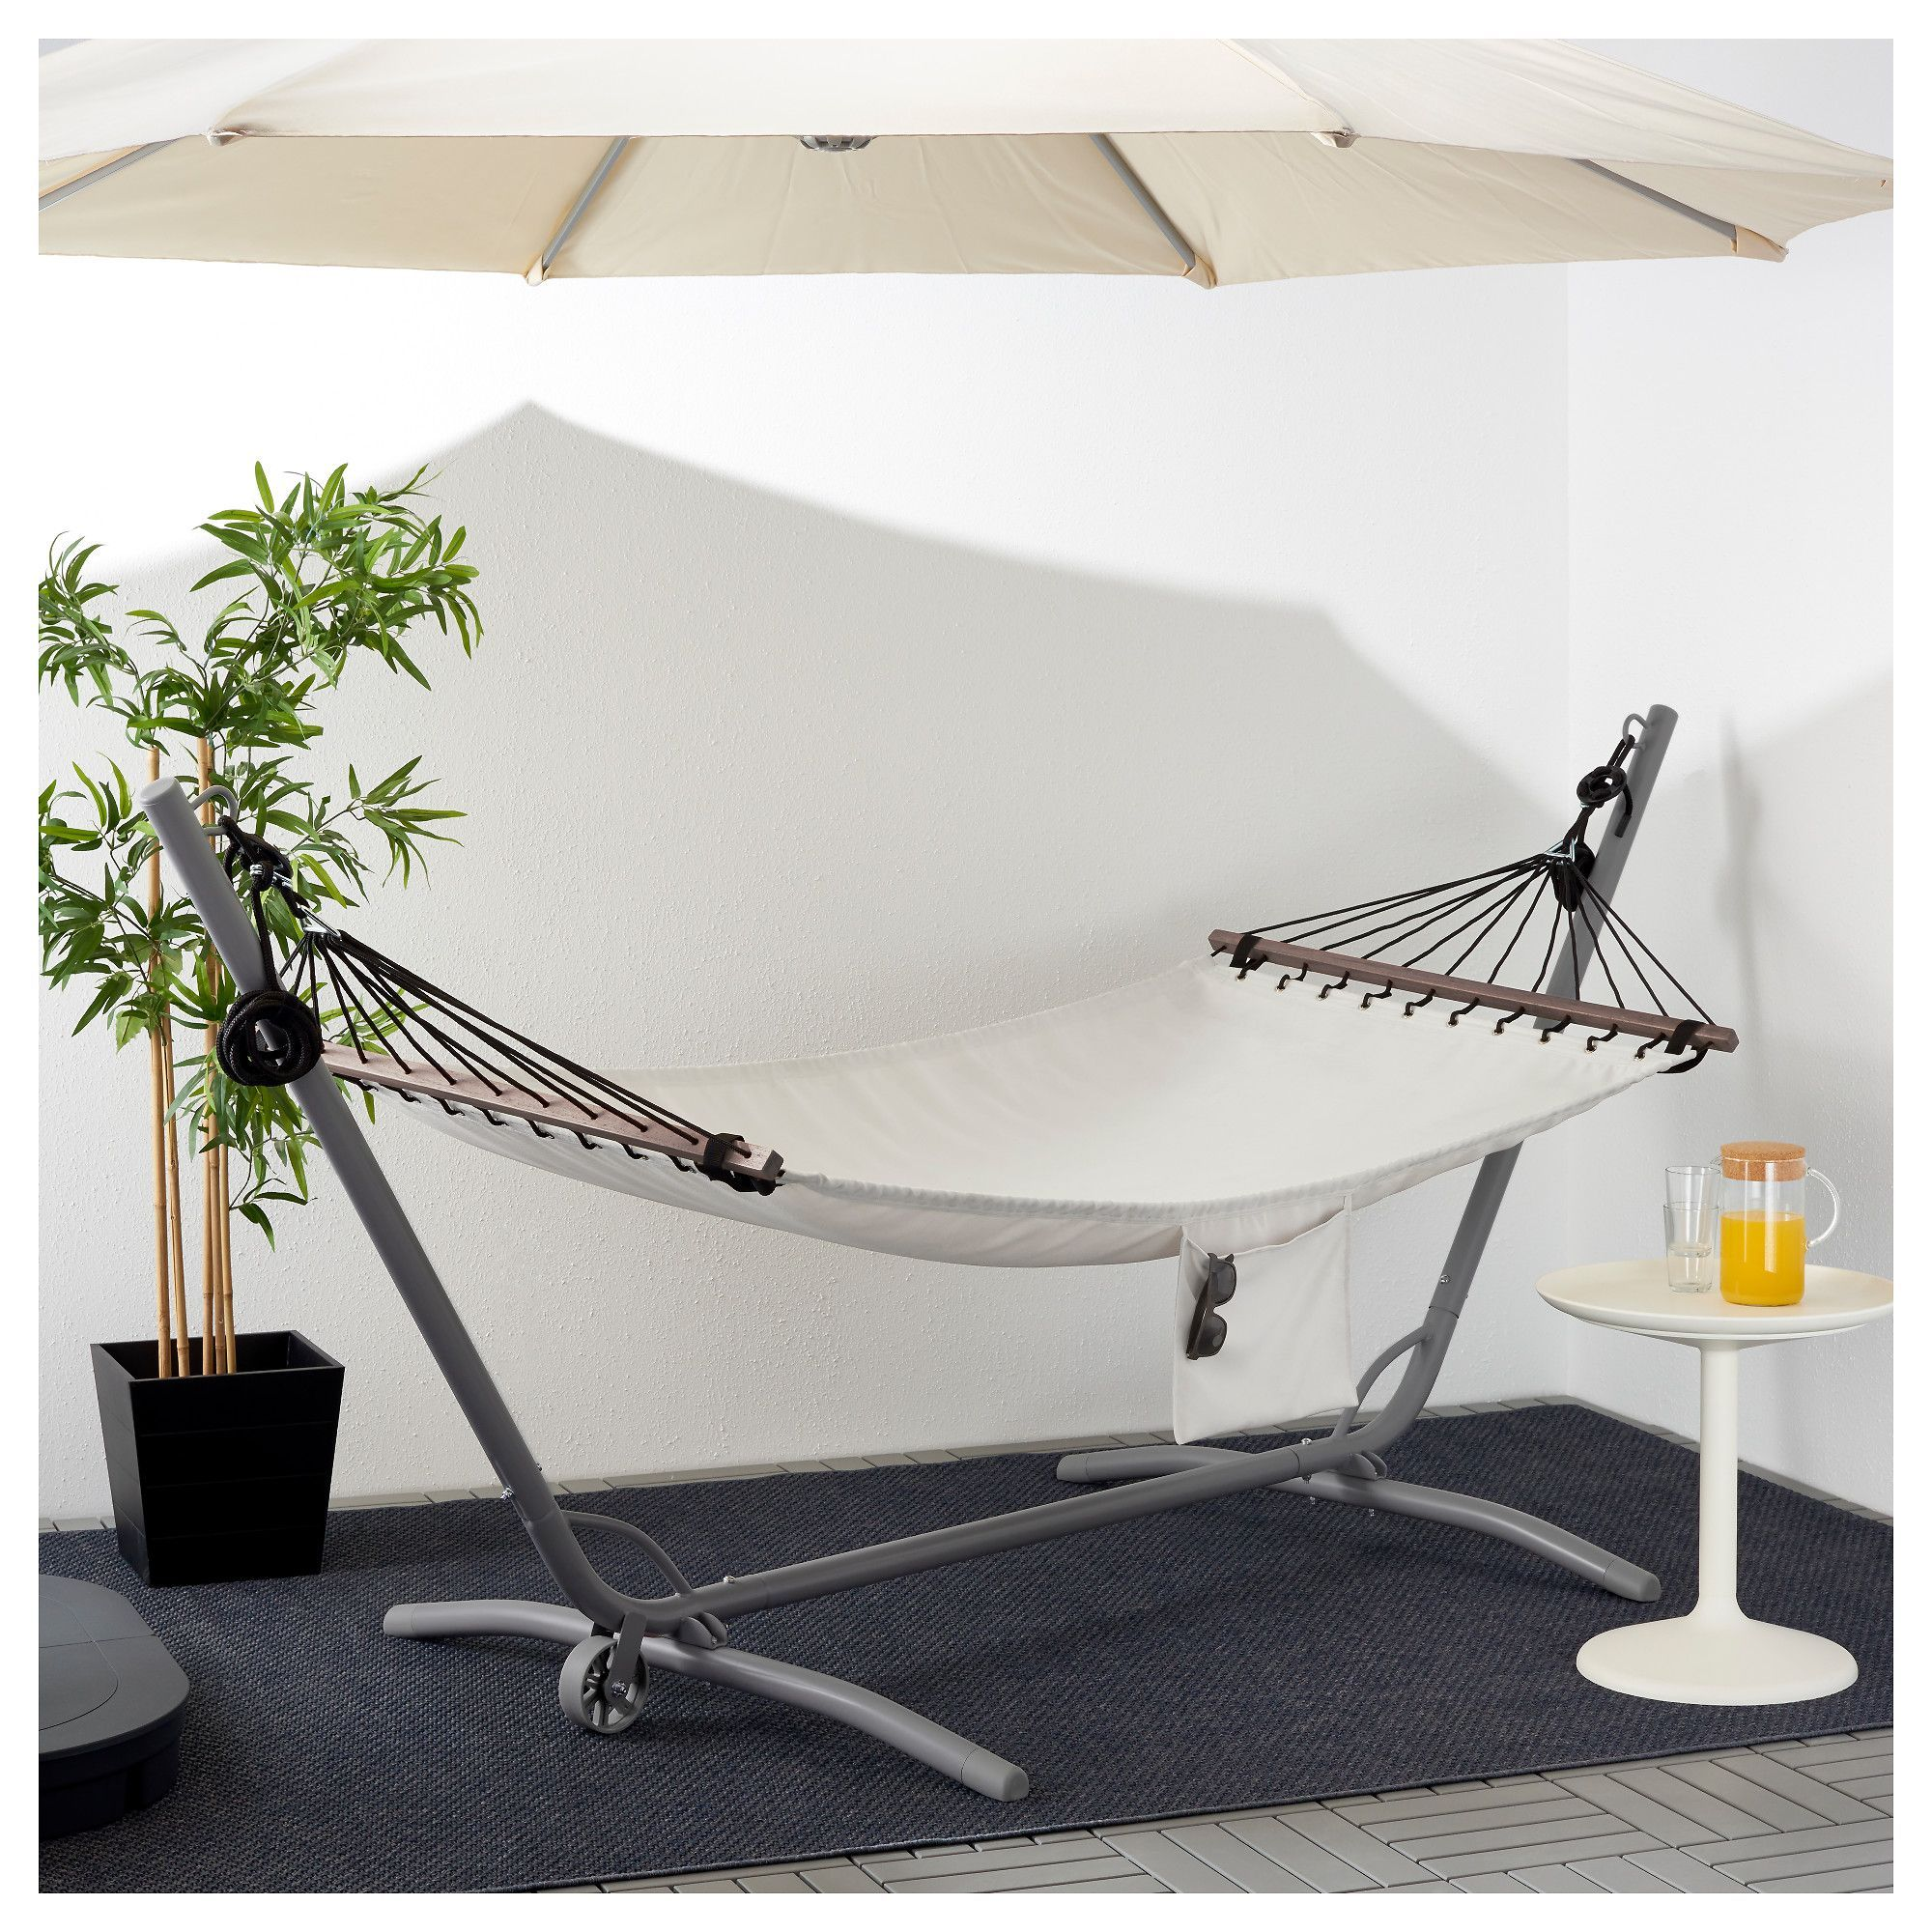 id introduction hammock large wooden stand up diy